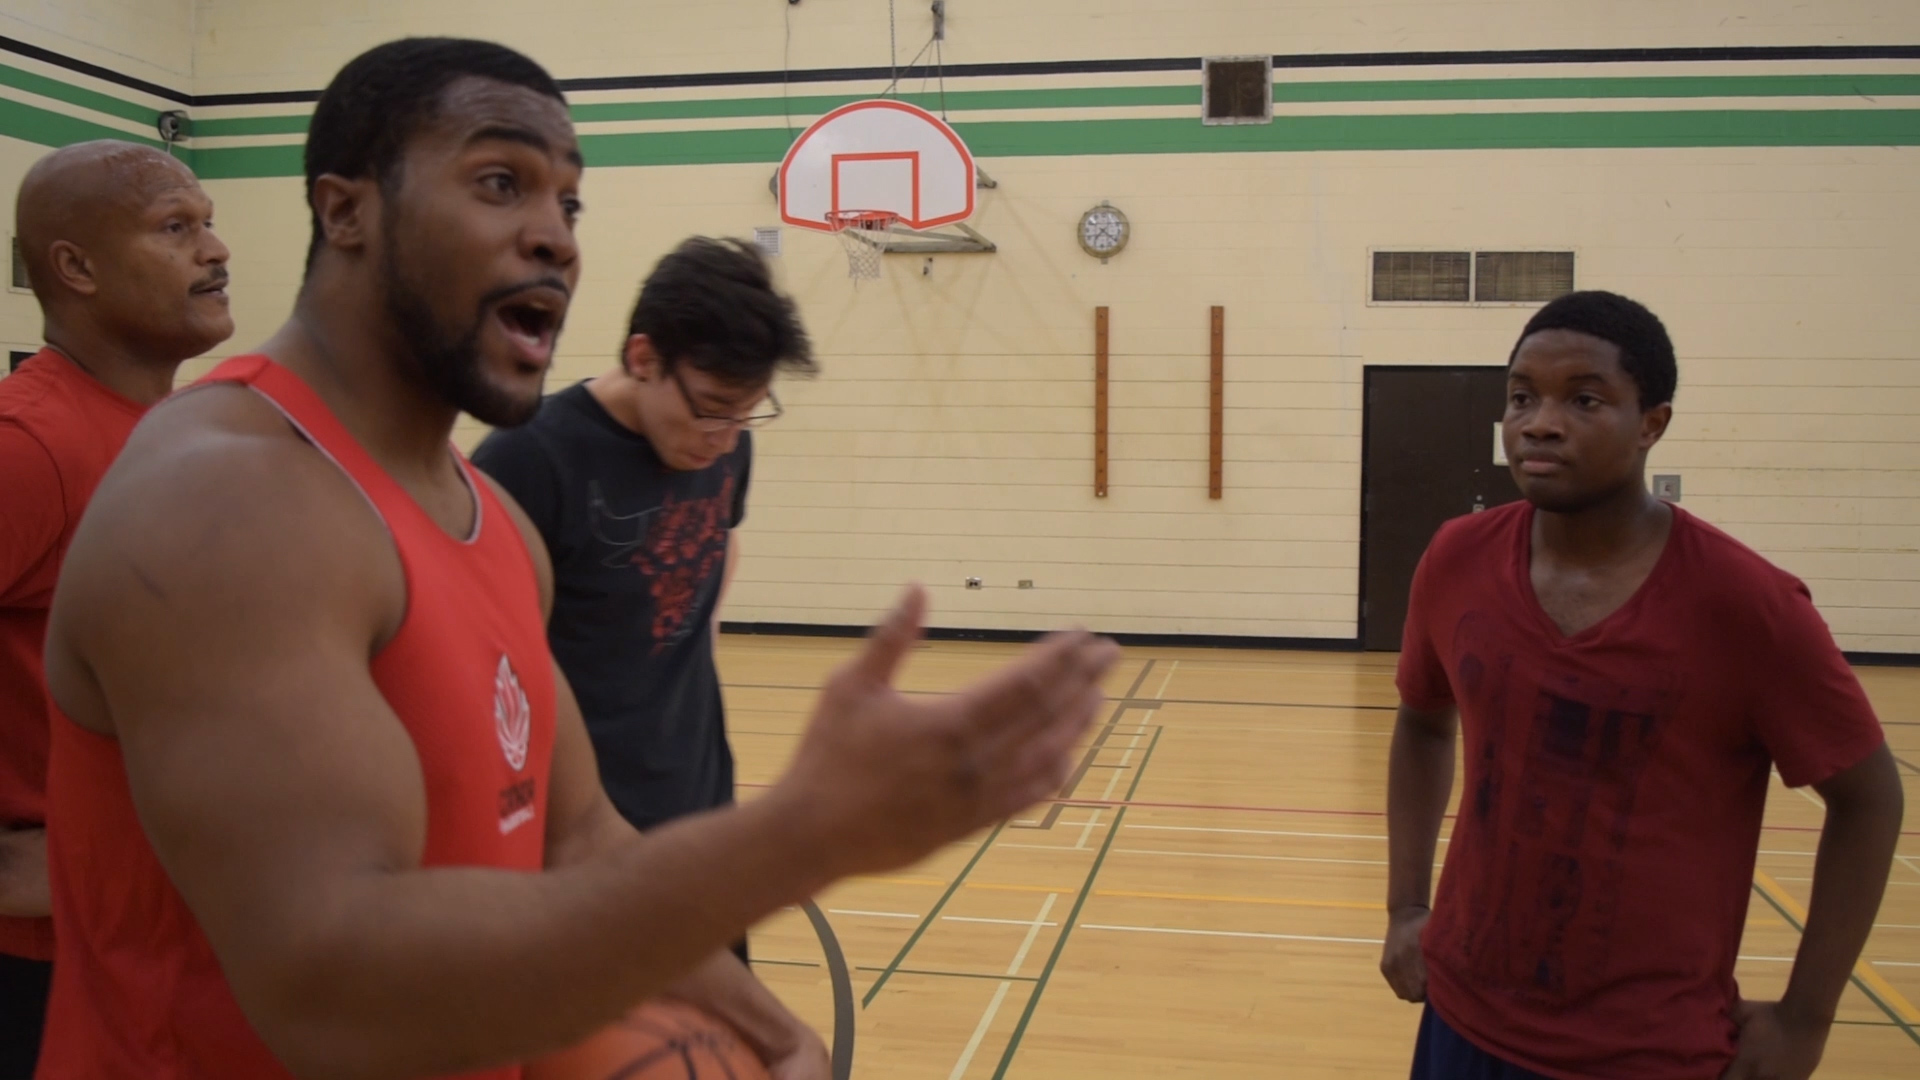 THE JOURNEY TO MANHOOD | NON-PROFIT - Hoop 2 Hope is a program for boys 8 – 18 years old in the Jane-Finch Community. It is structured around a basketball league but the main purpose is to guide them on their journey from boyhood to manhood.